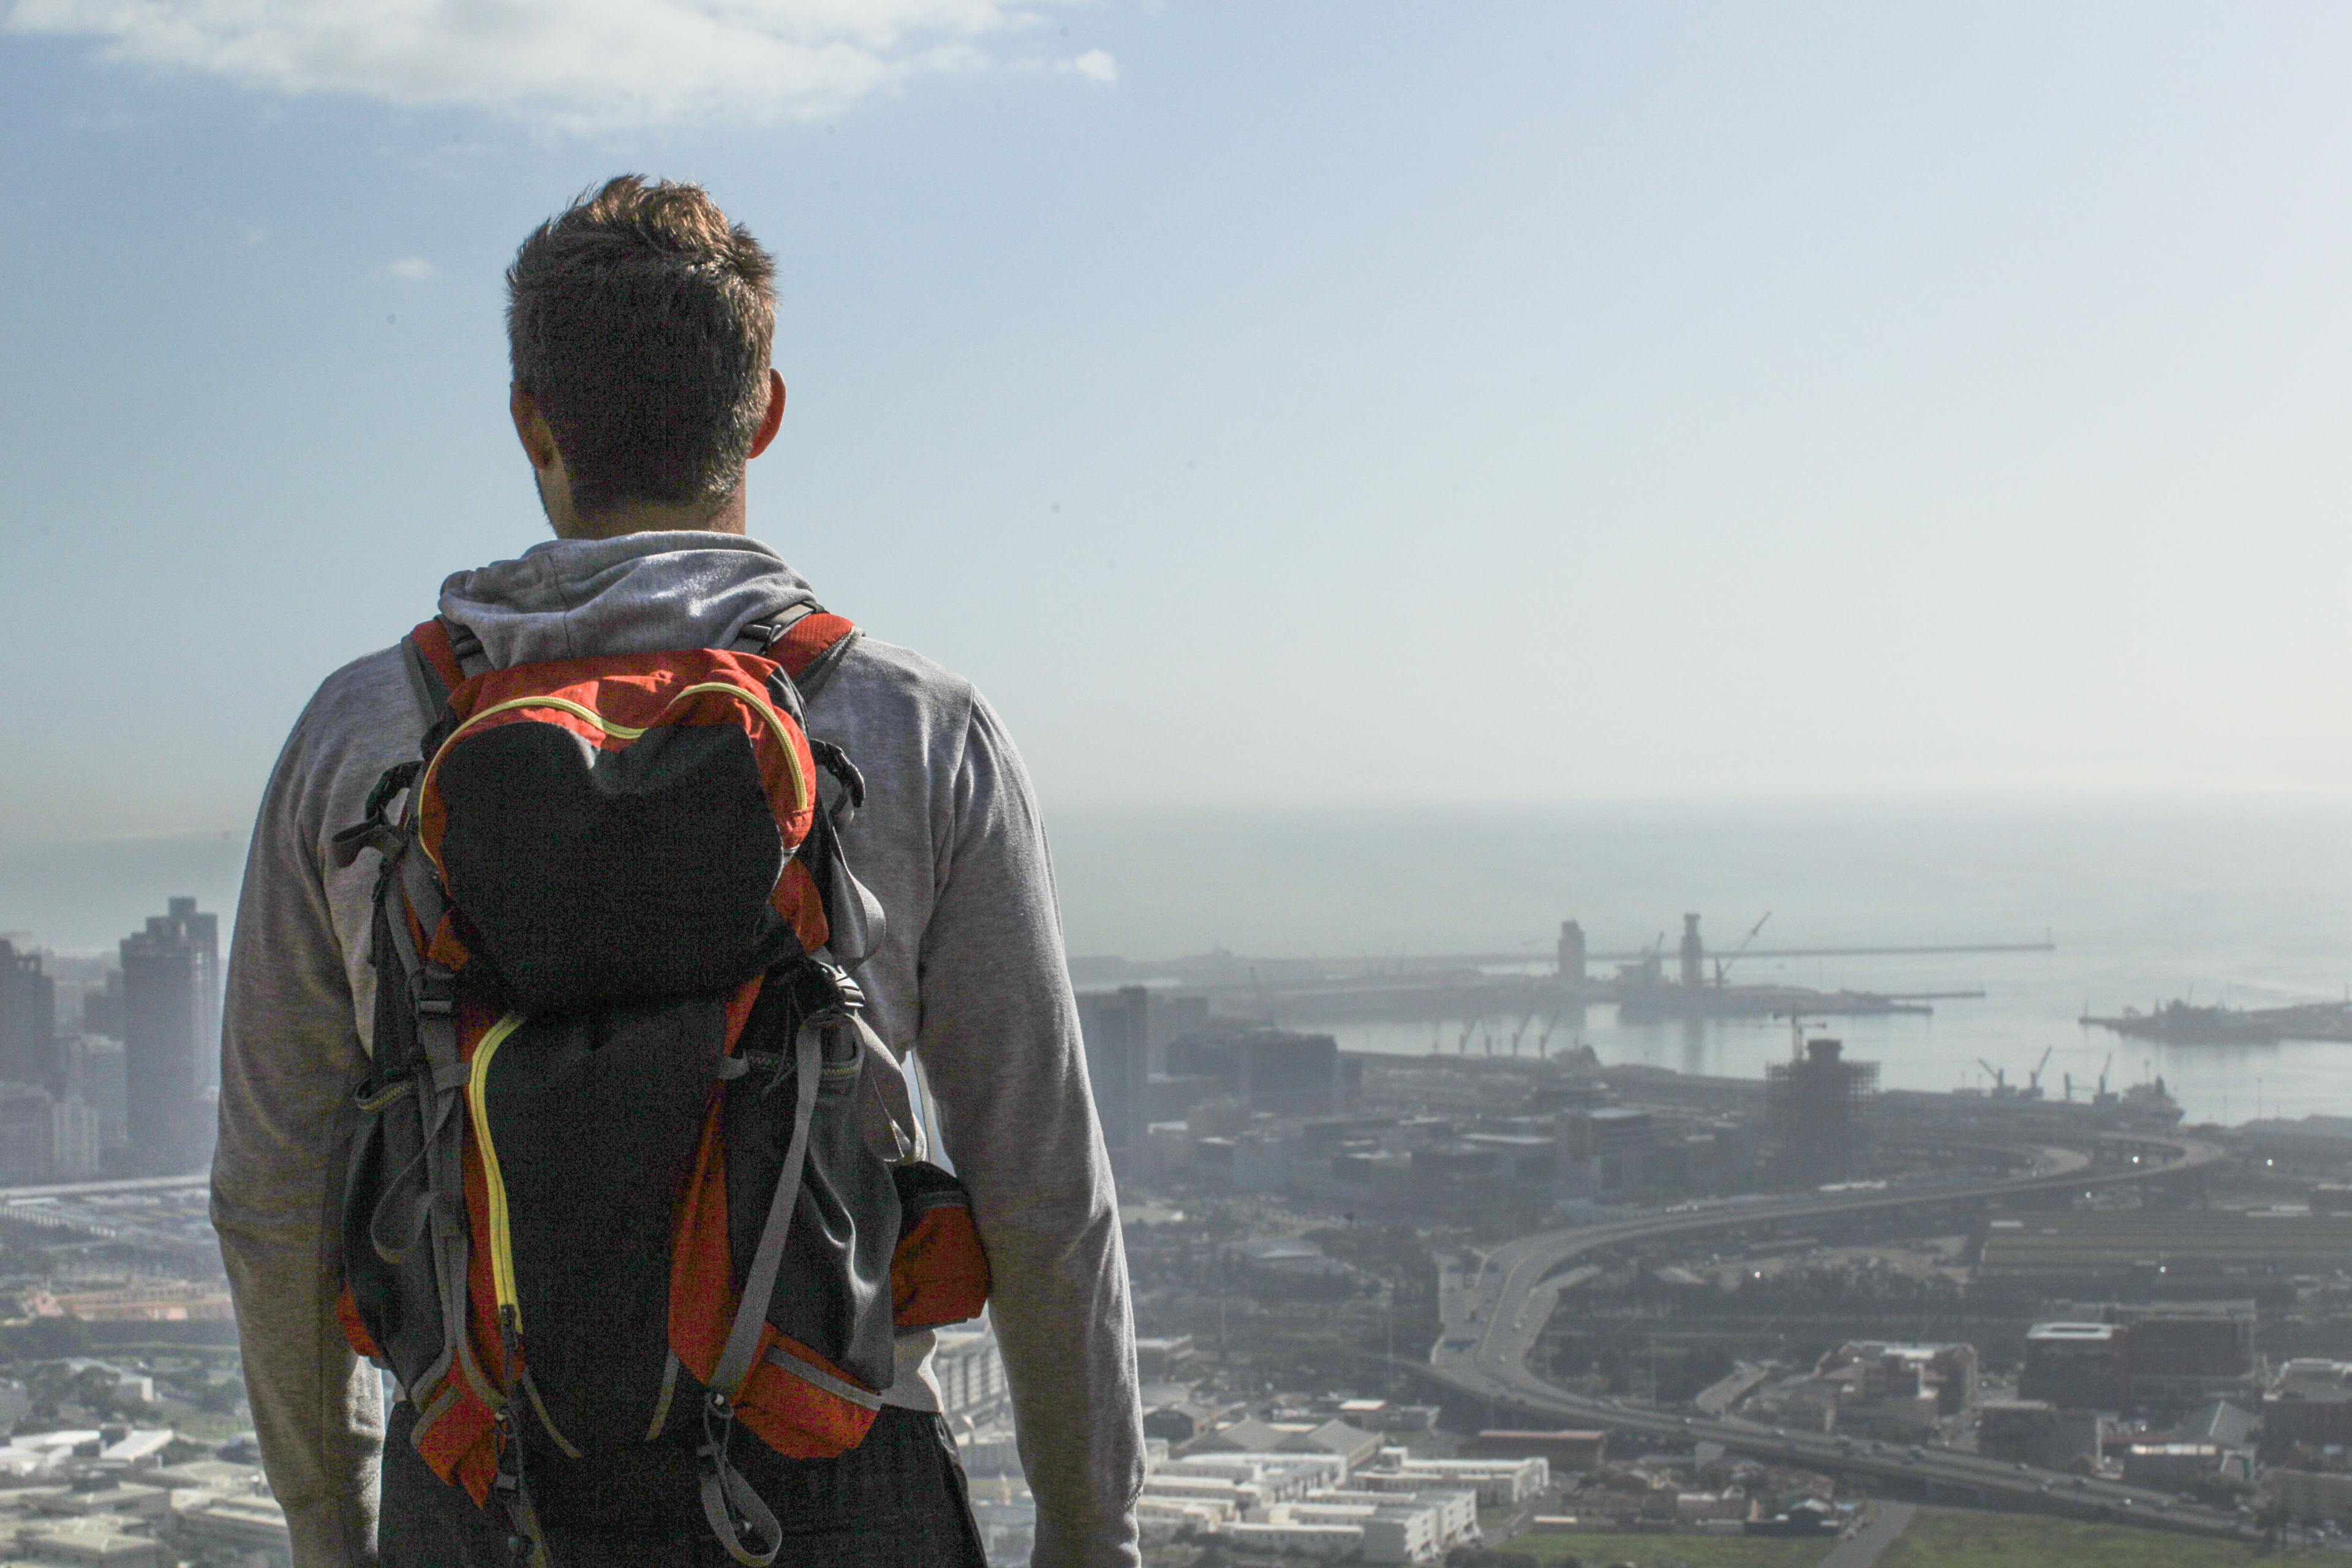 Man with a hiking backpack overlooks a city